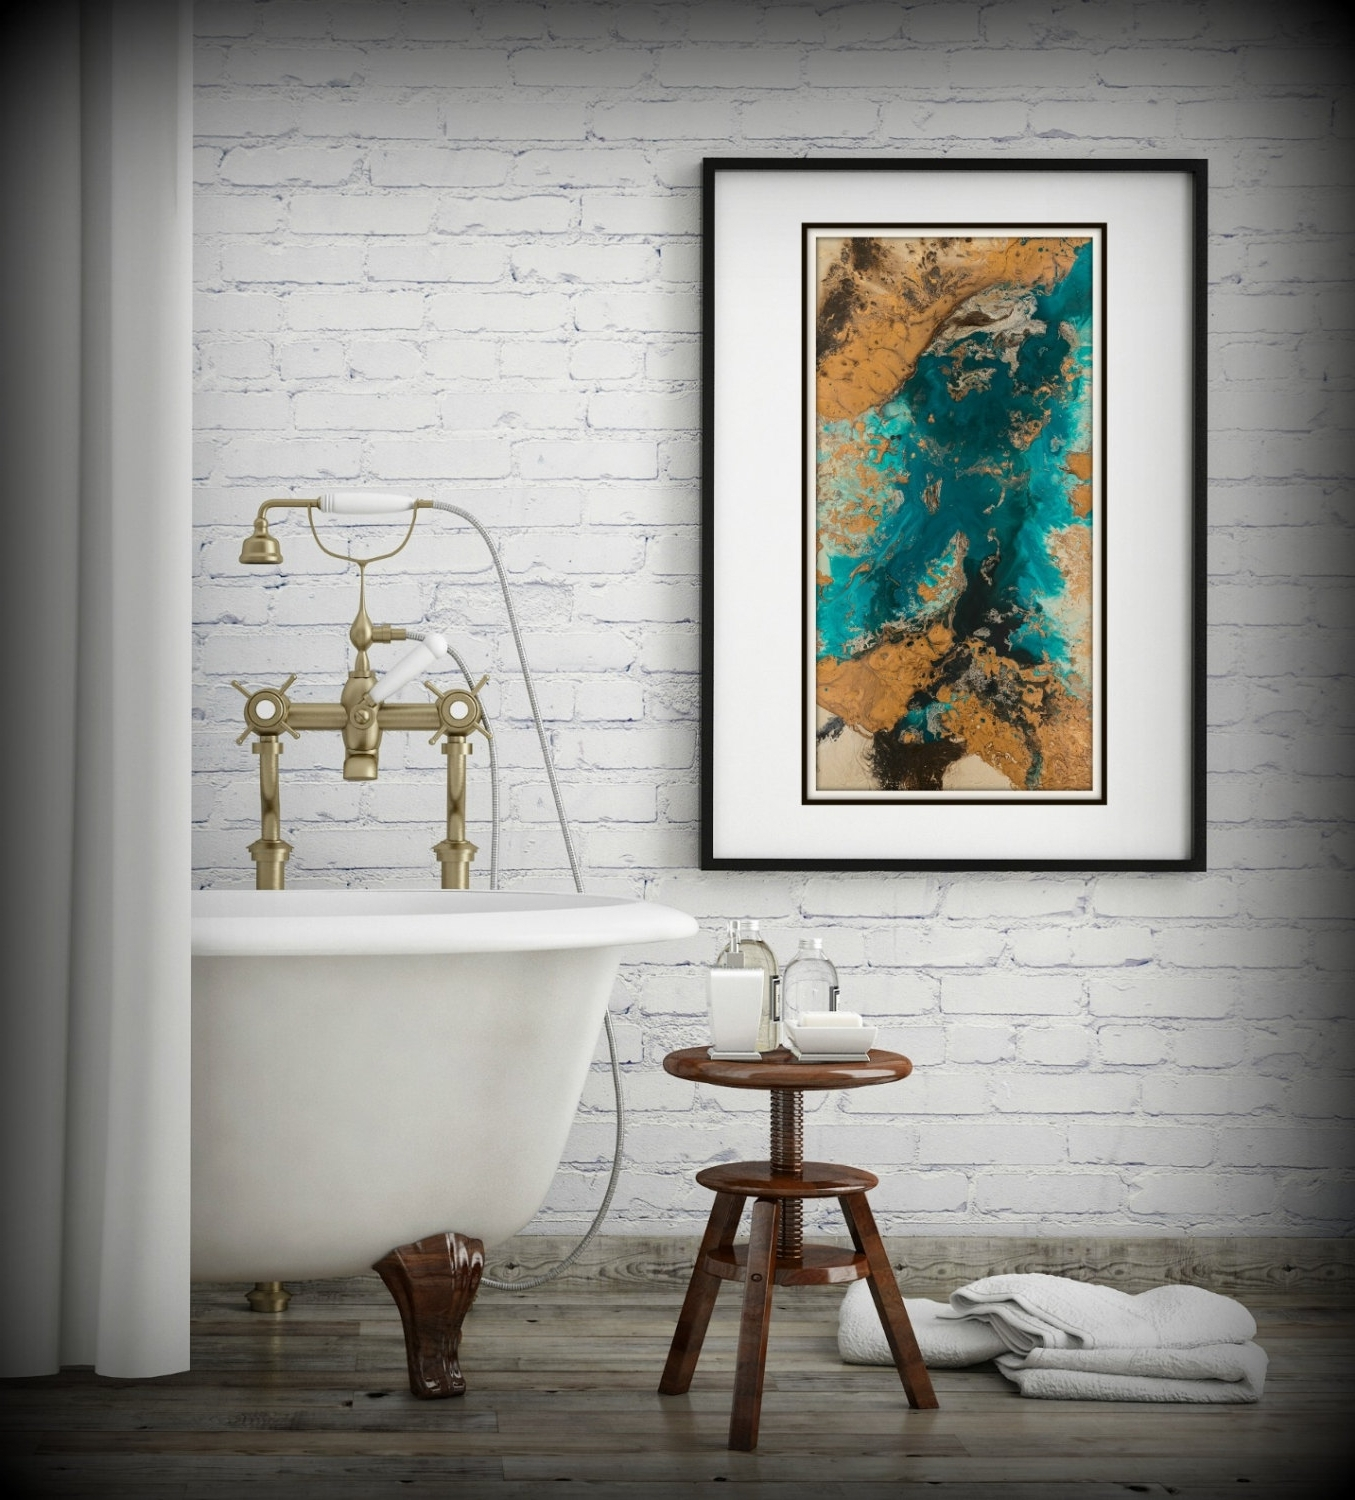 Most Recent Abstract Wall Art For Bathroom Pertaining To Teal And Copper Abstract Art, Large Abstract Print, Neutral Colors (View 7 of 15)